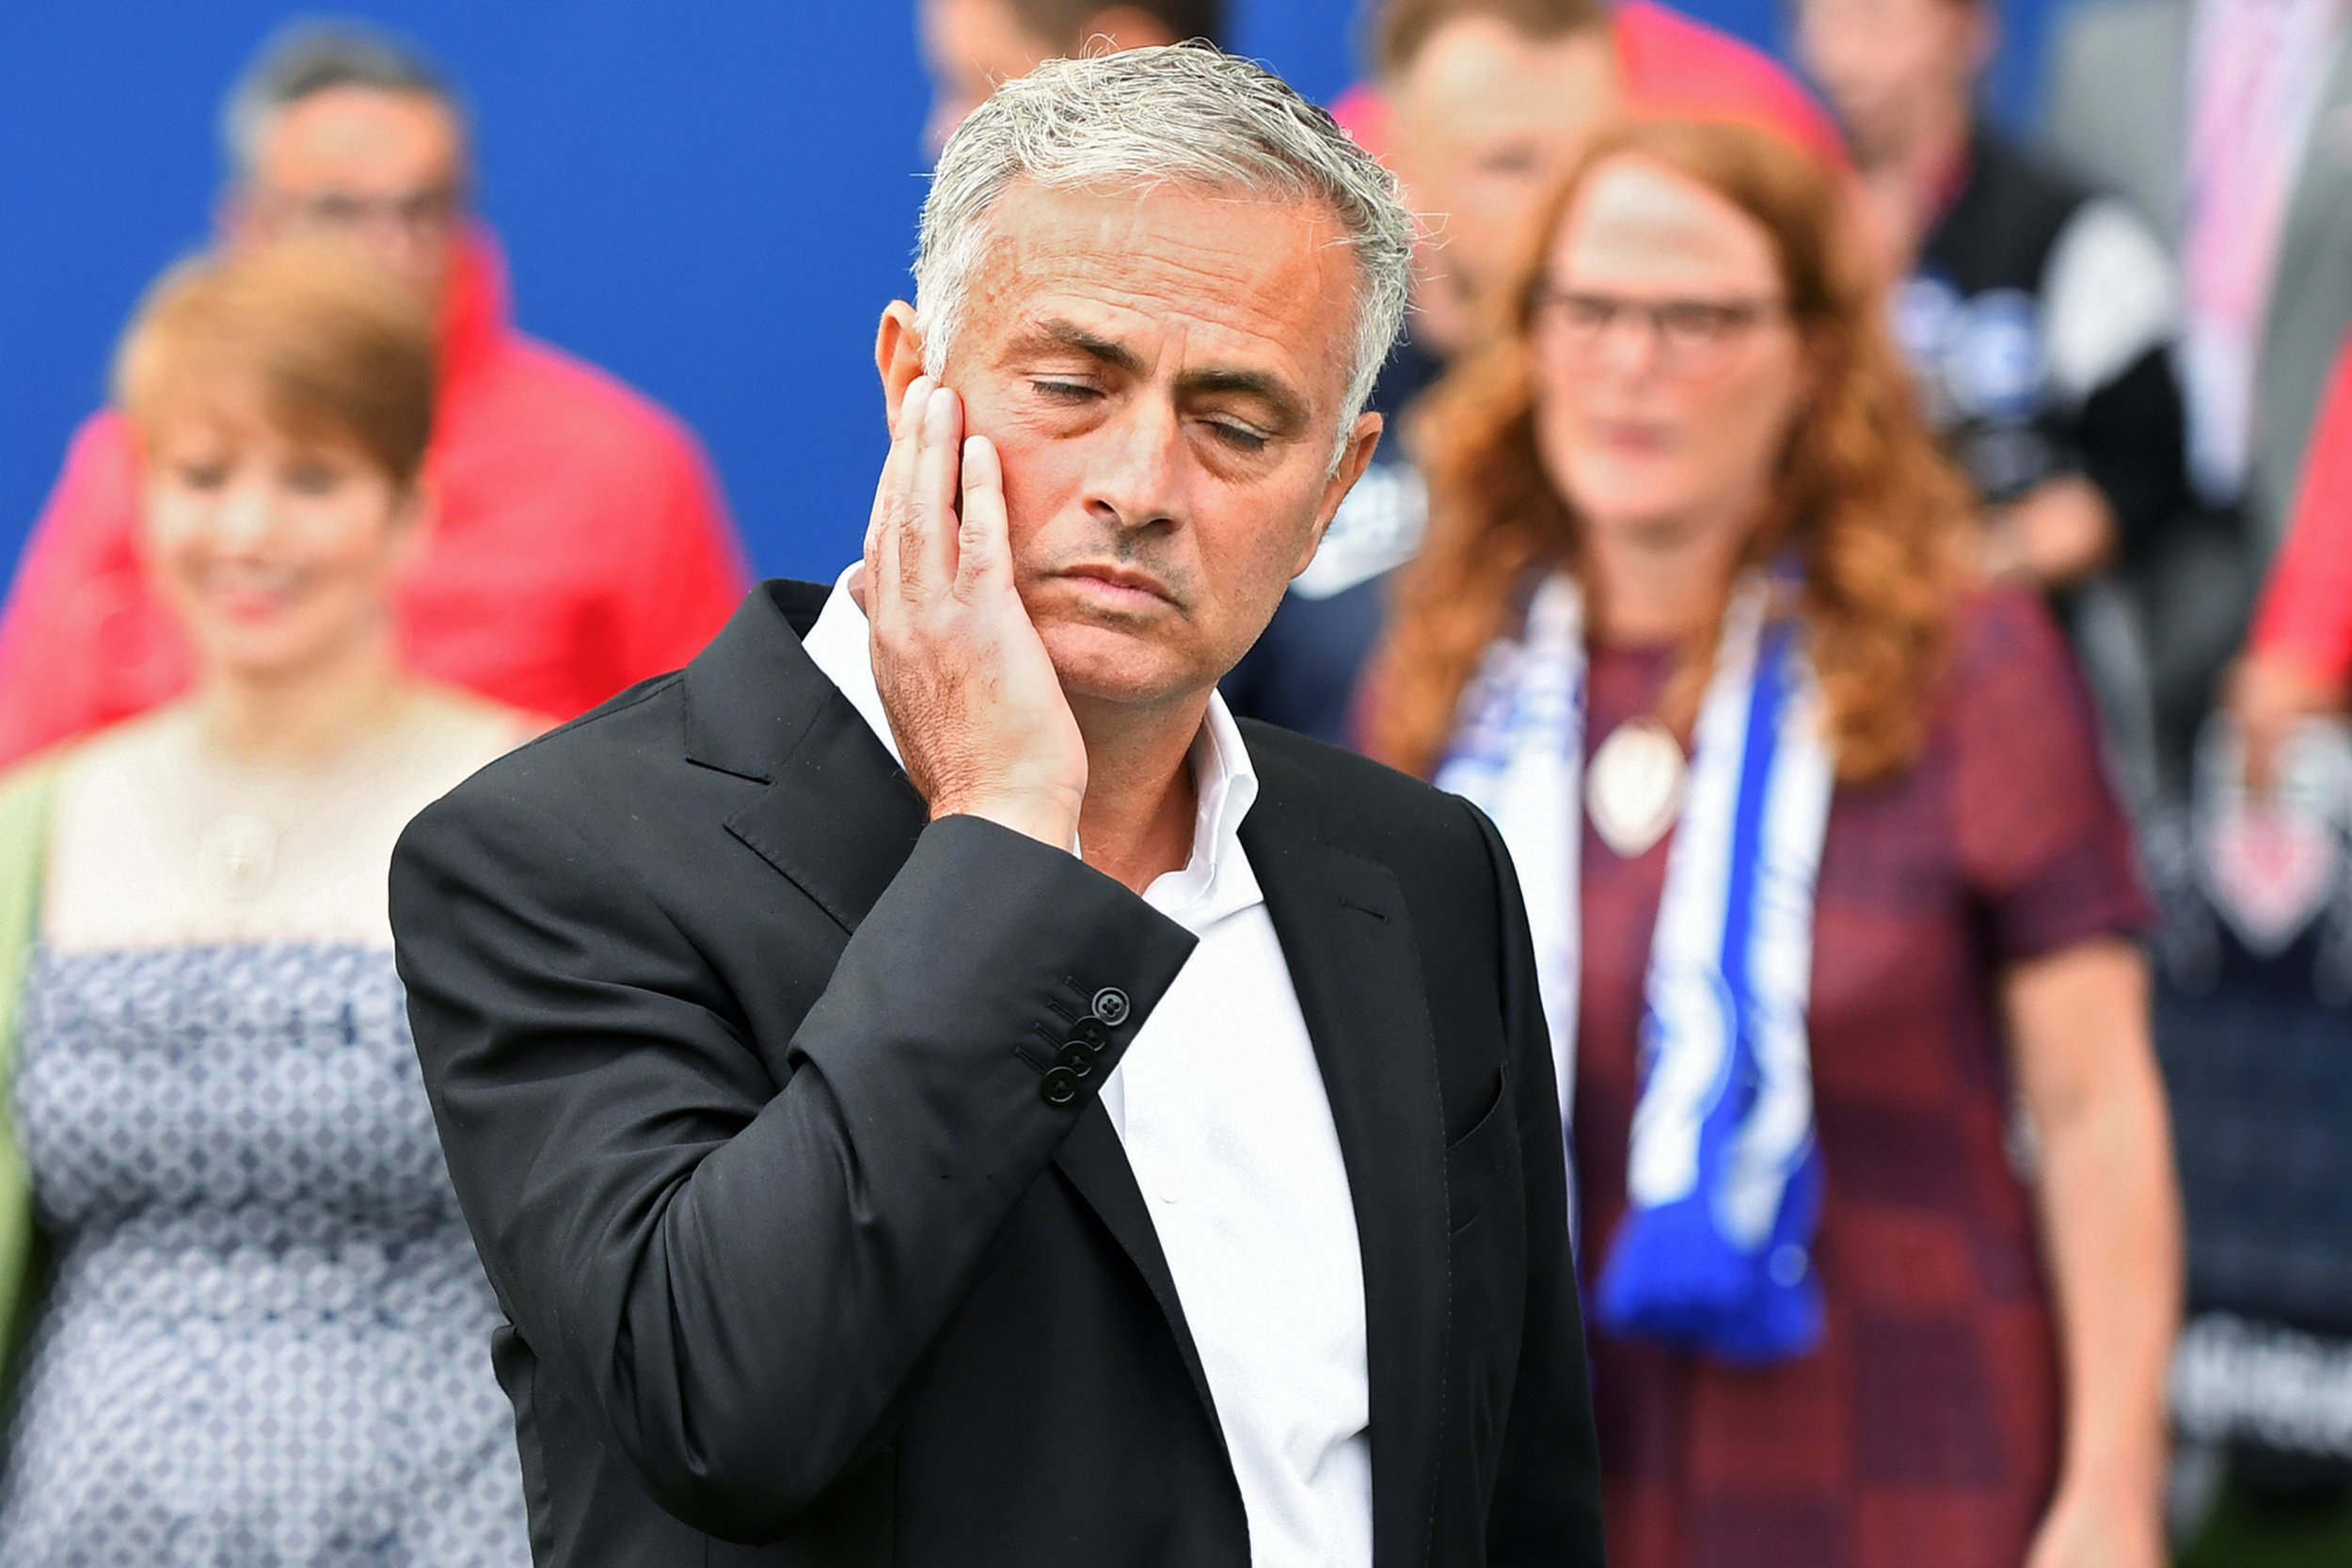 Jose Mourinho, Manchester United Manager - Brighton & Hove Albion v Manchester United, Premier League, Amex Stadium, Brighton - 19th August 2018